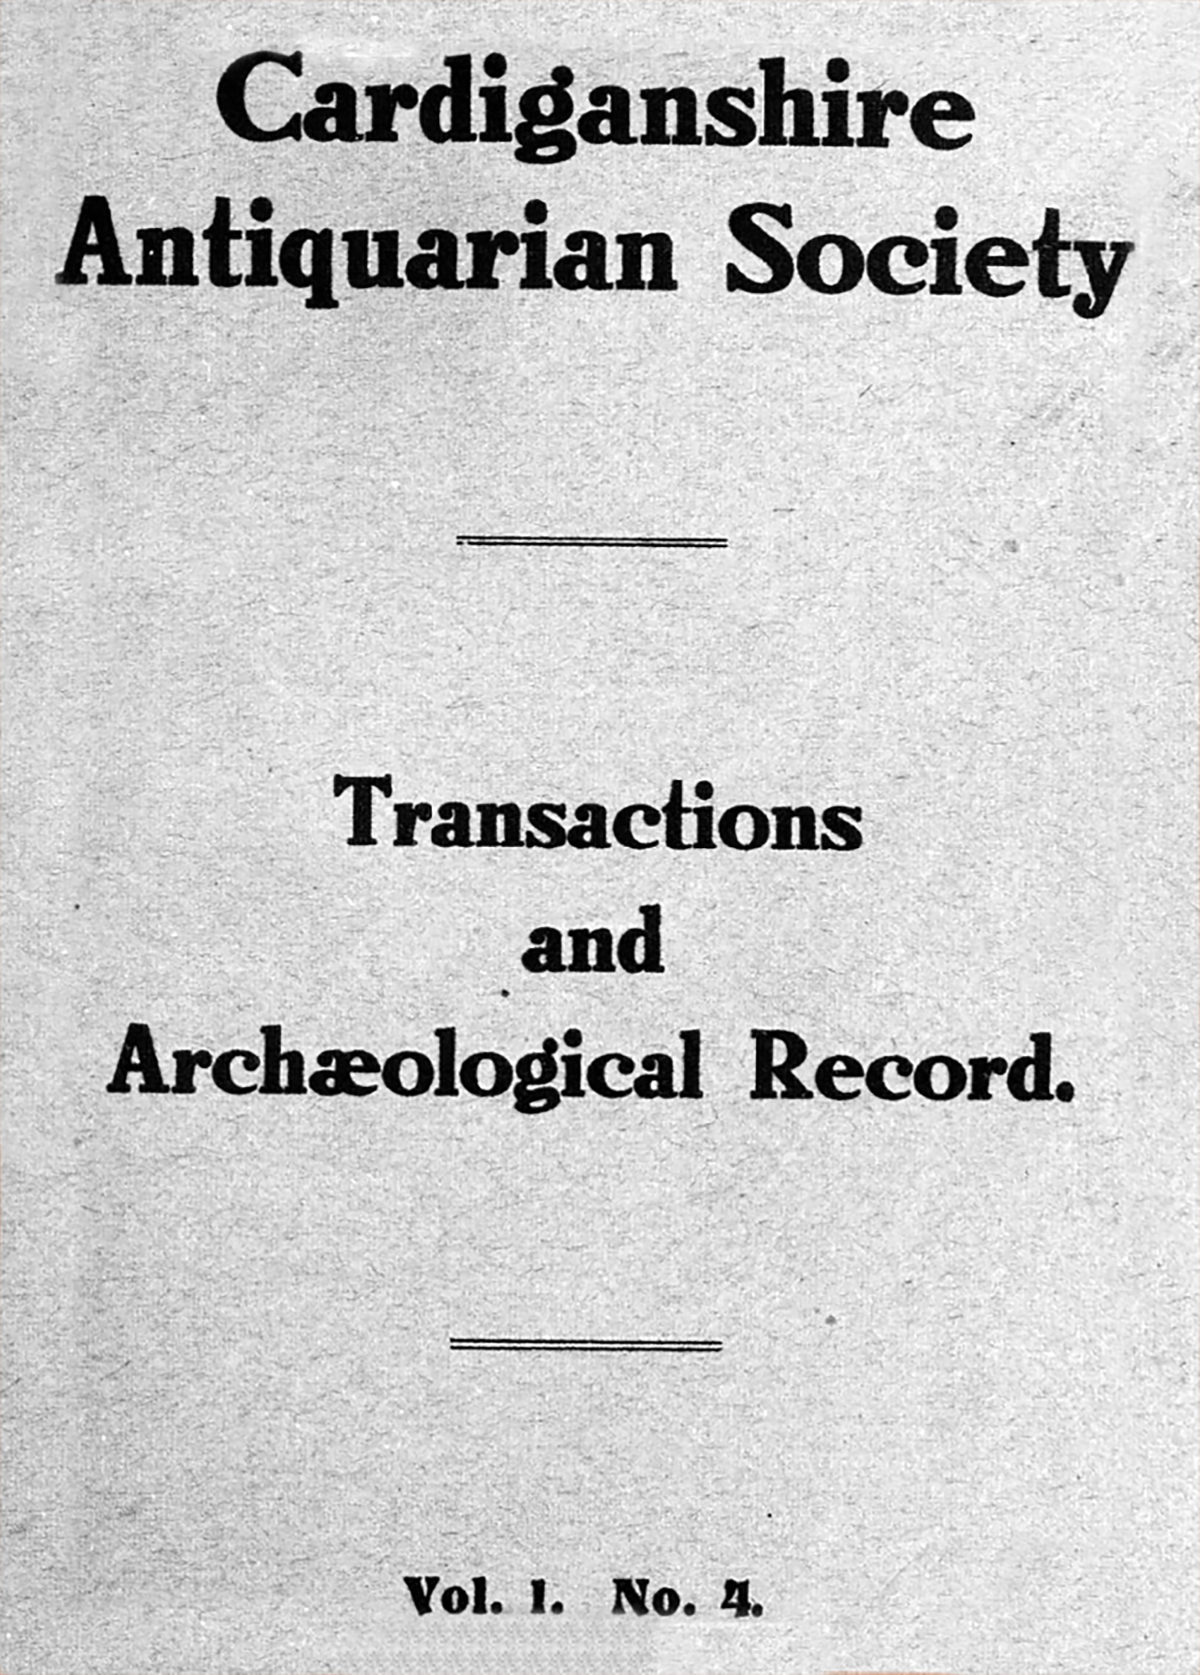 Transactions of the Cardiganshire Antiquarian Society and archaeological Record - Volume 1 Part 4